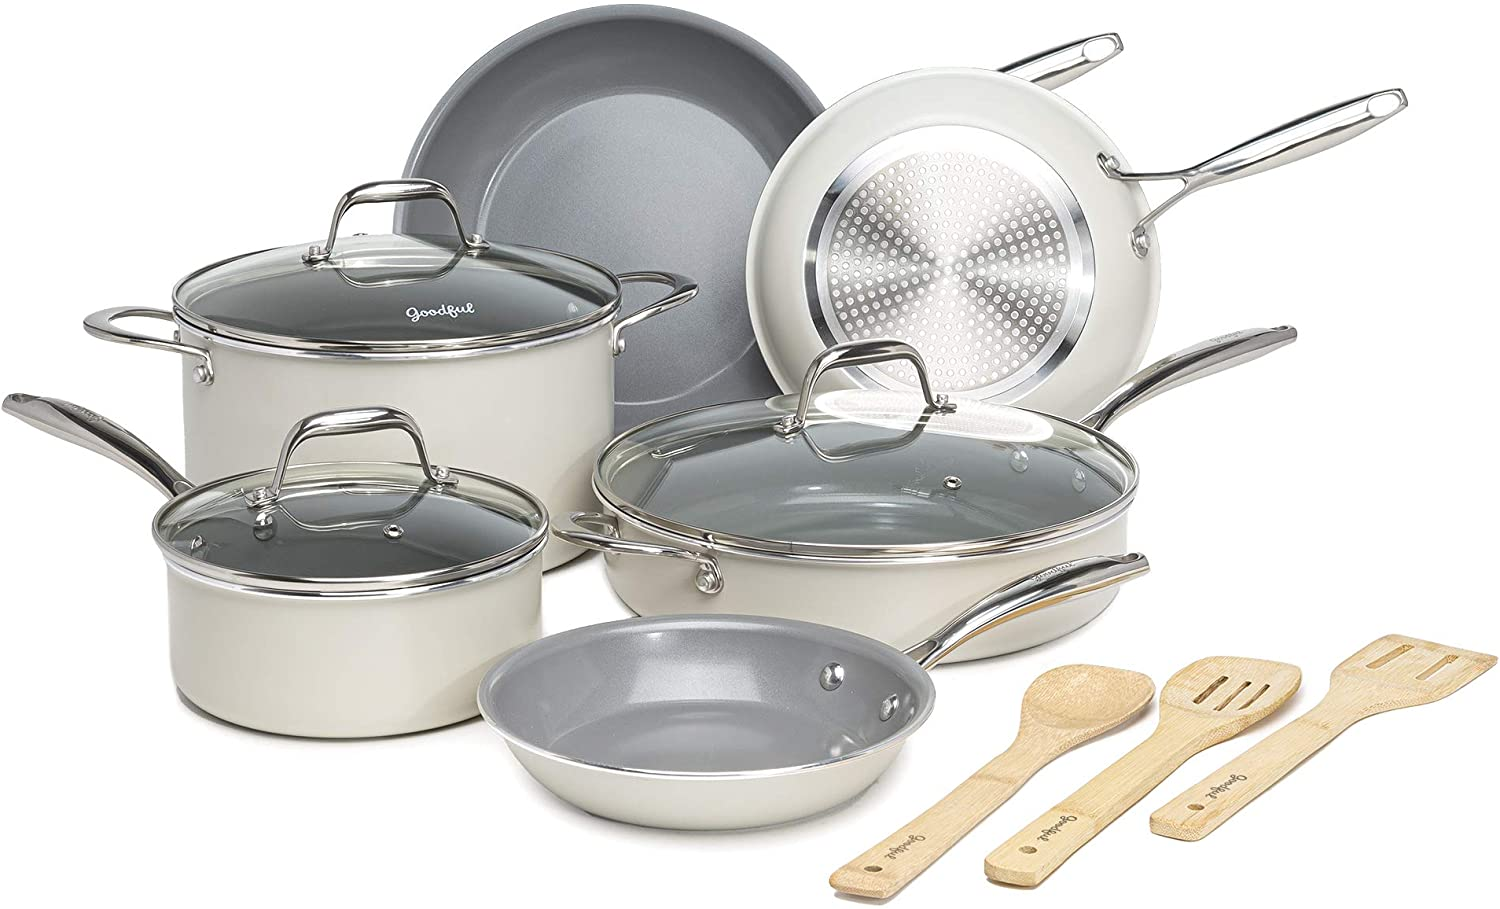 Goodful 12 Piece Cookware Set With Titanium-Reinforced Premium Non-Stick Coating